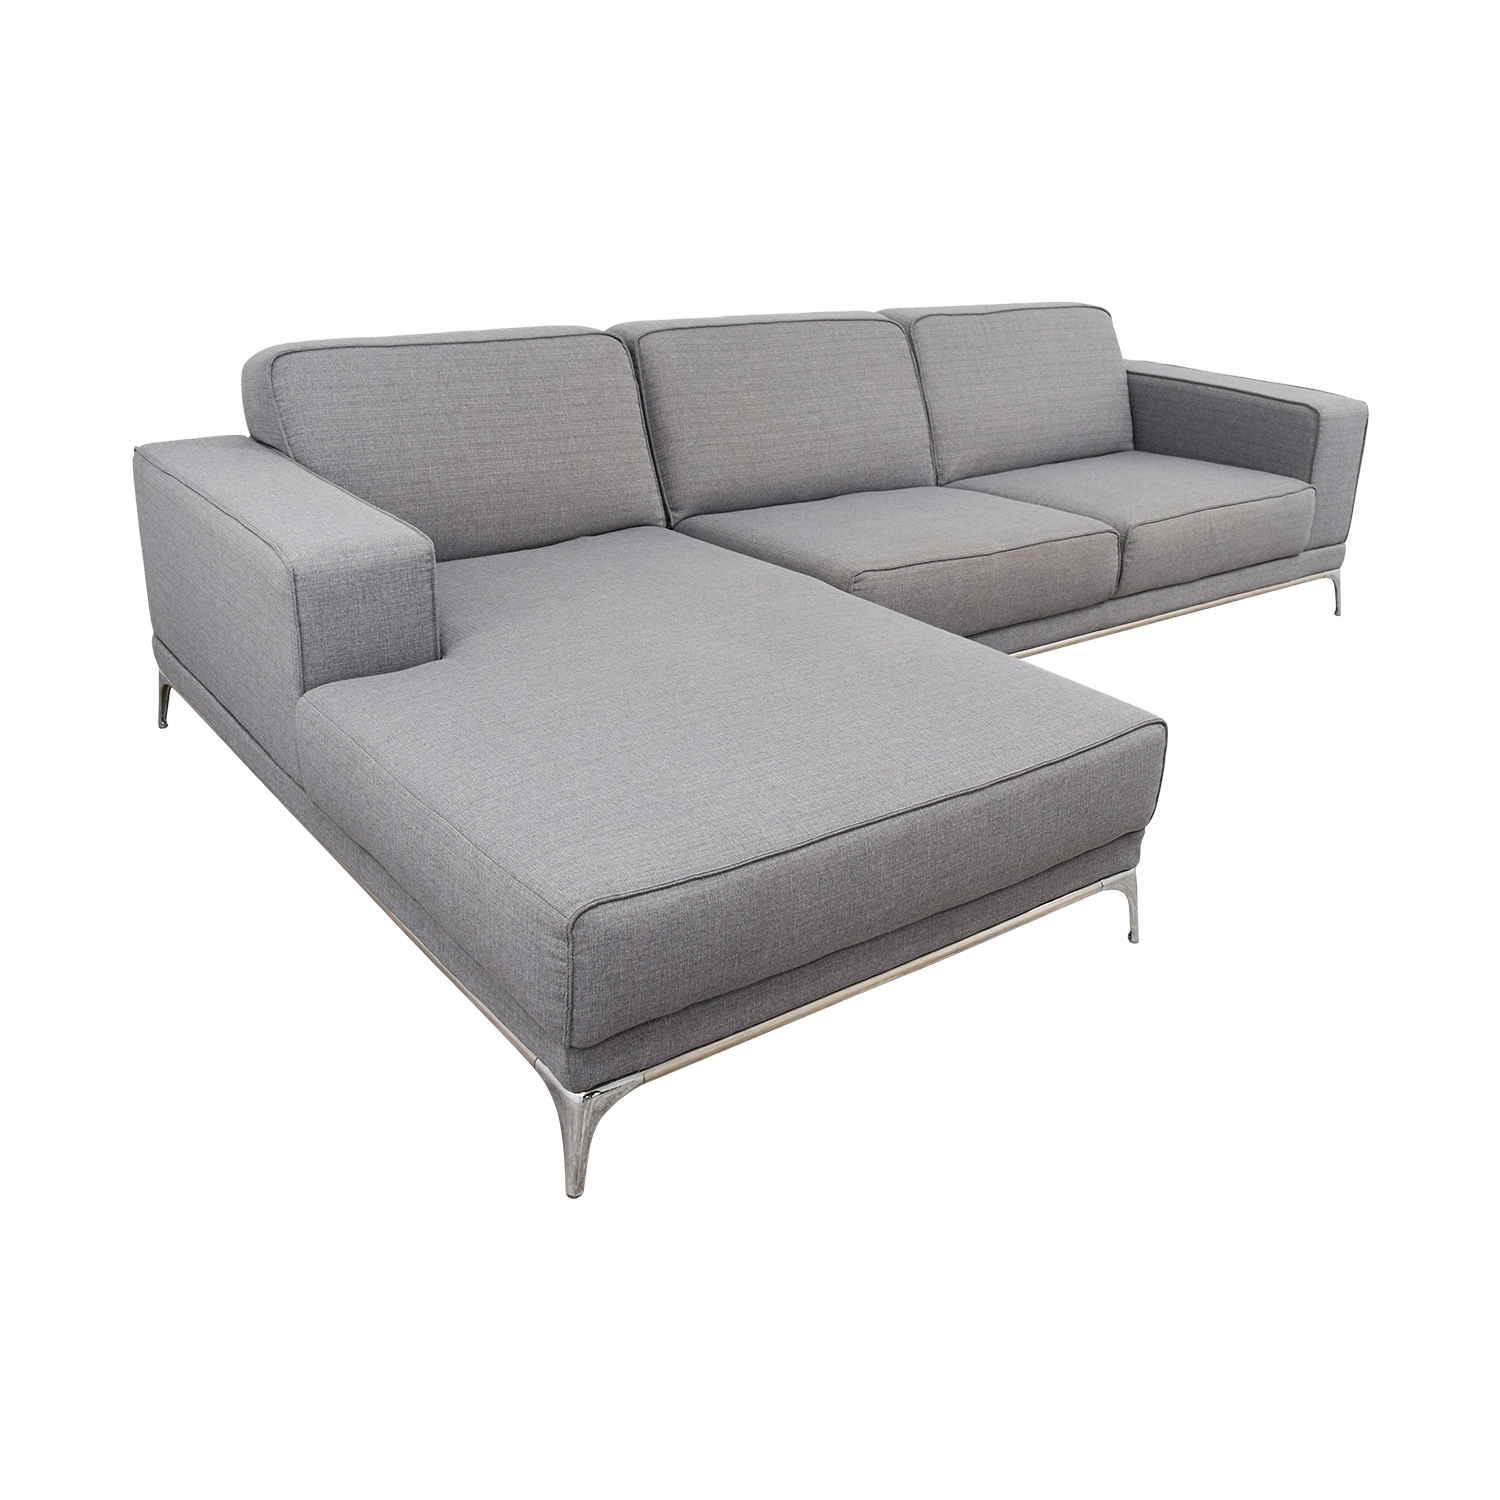 open shop mste he leather reclining interior sectional and grey steinbeck light furniture heron